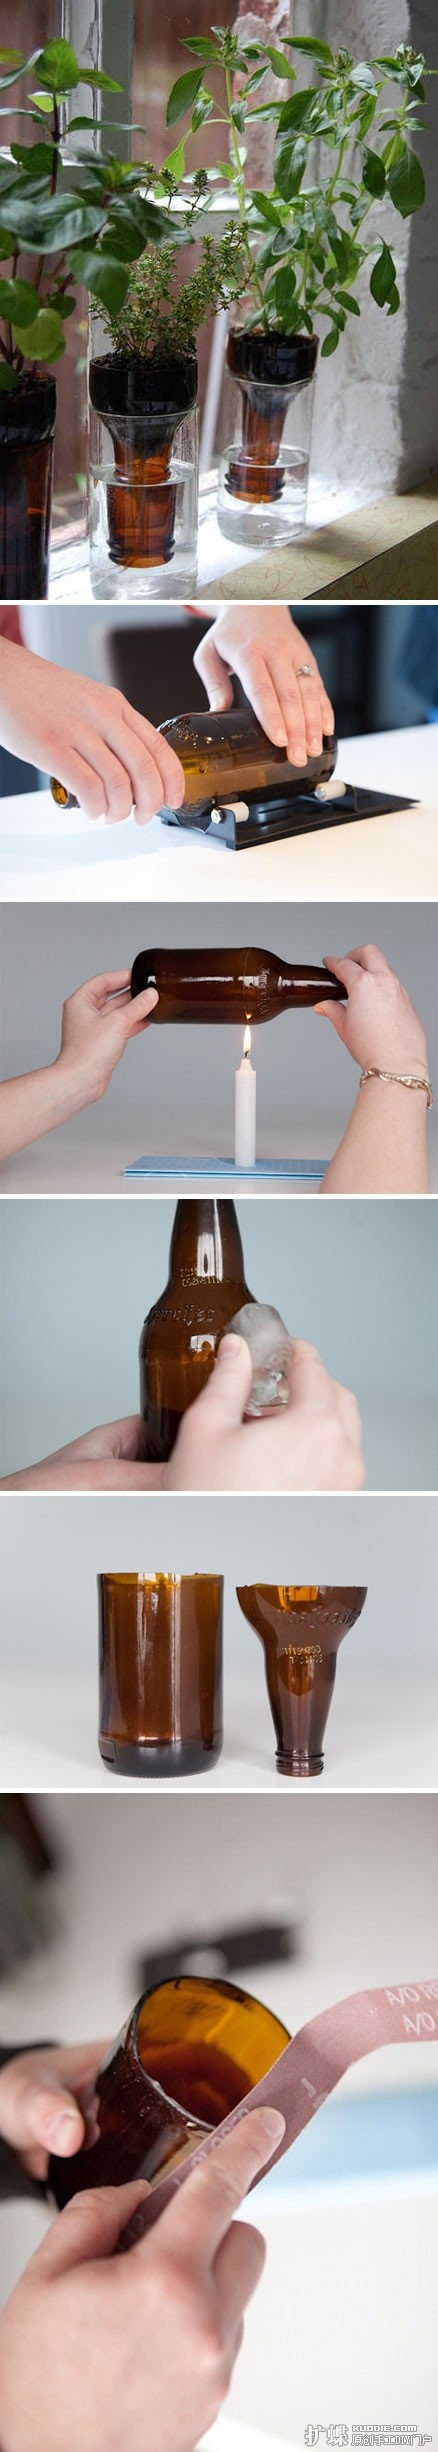 how to cut glass bottle for herb planters